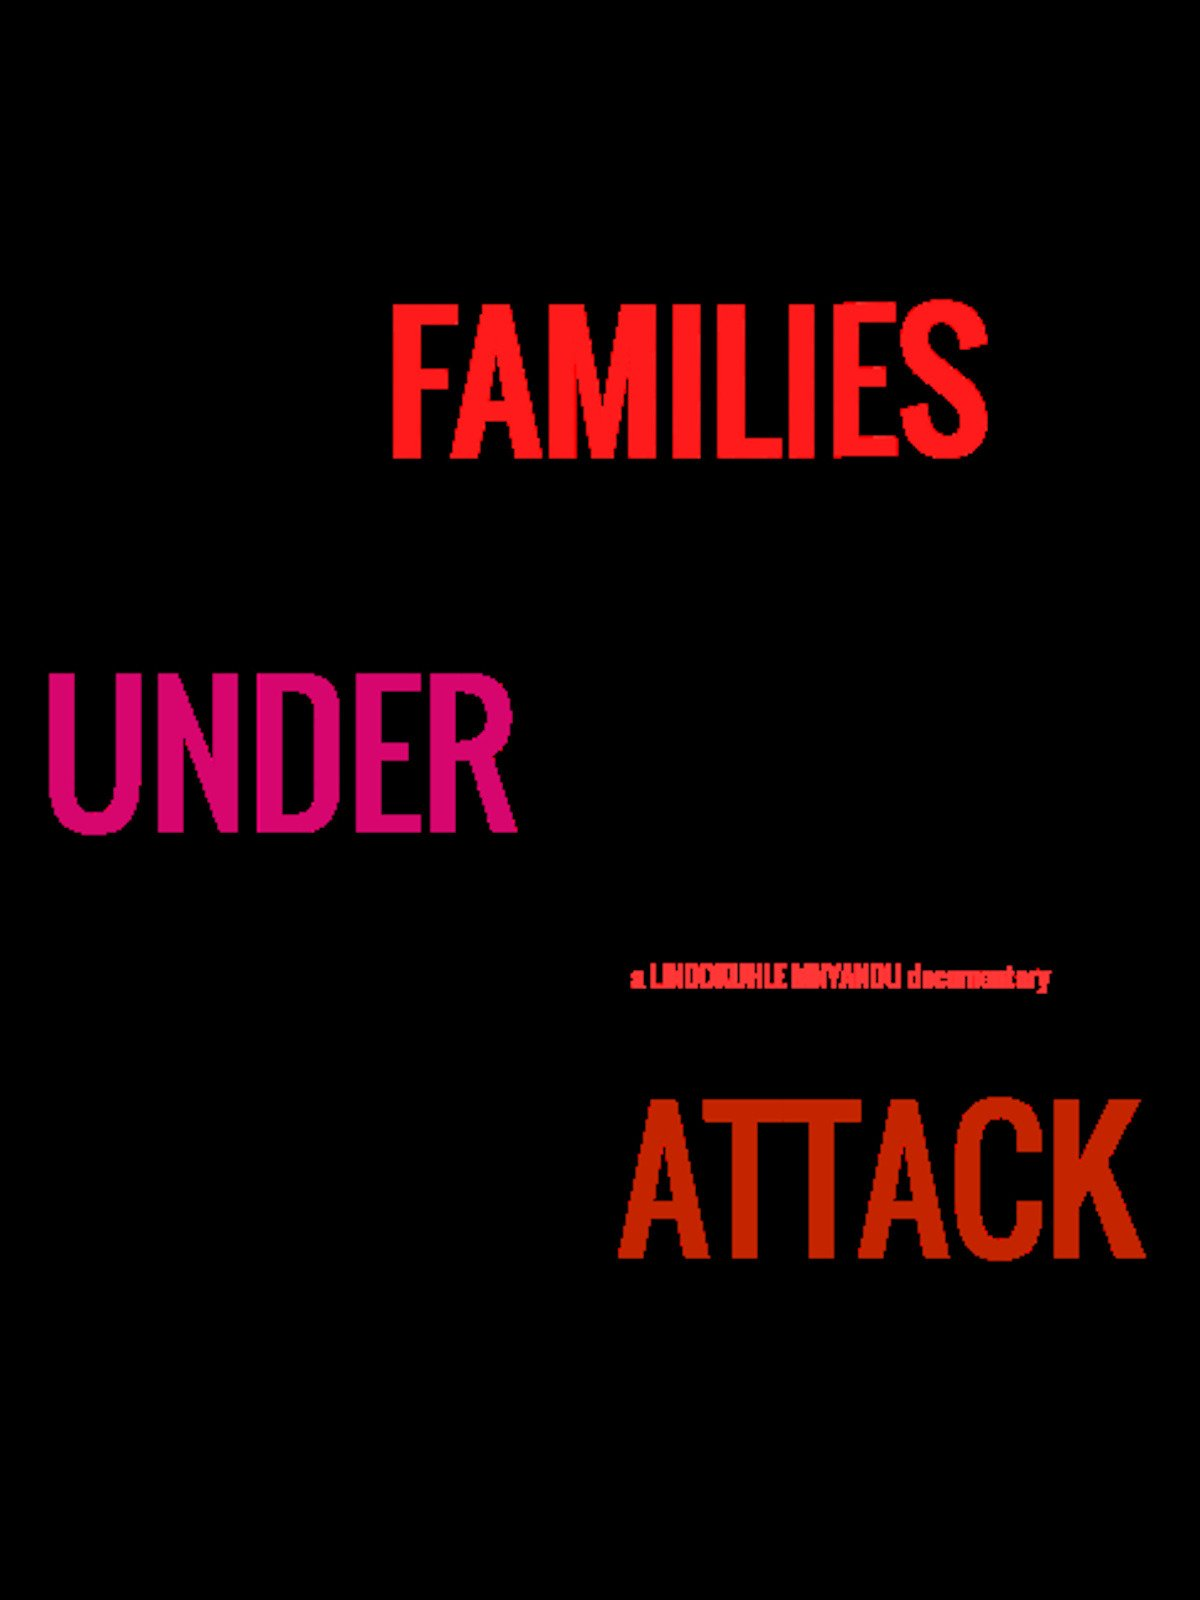 Families Under Attack